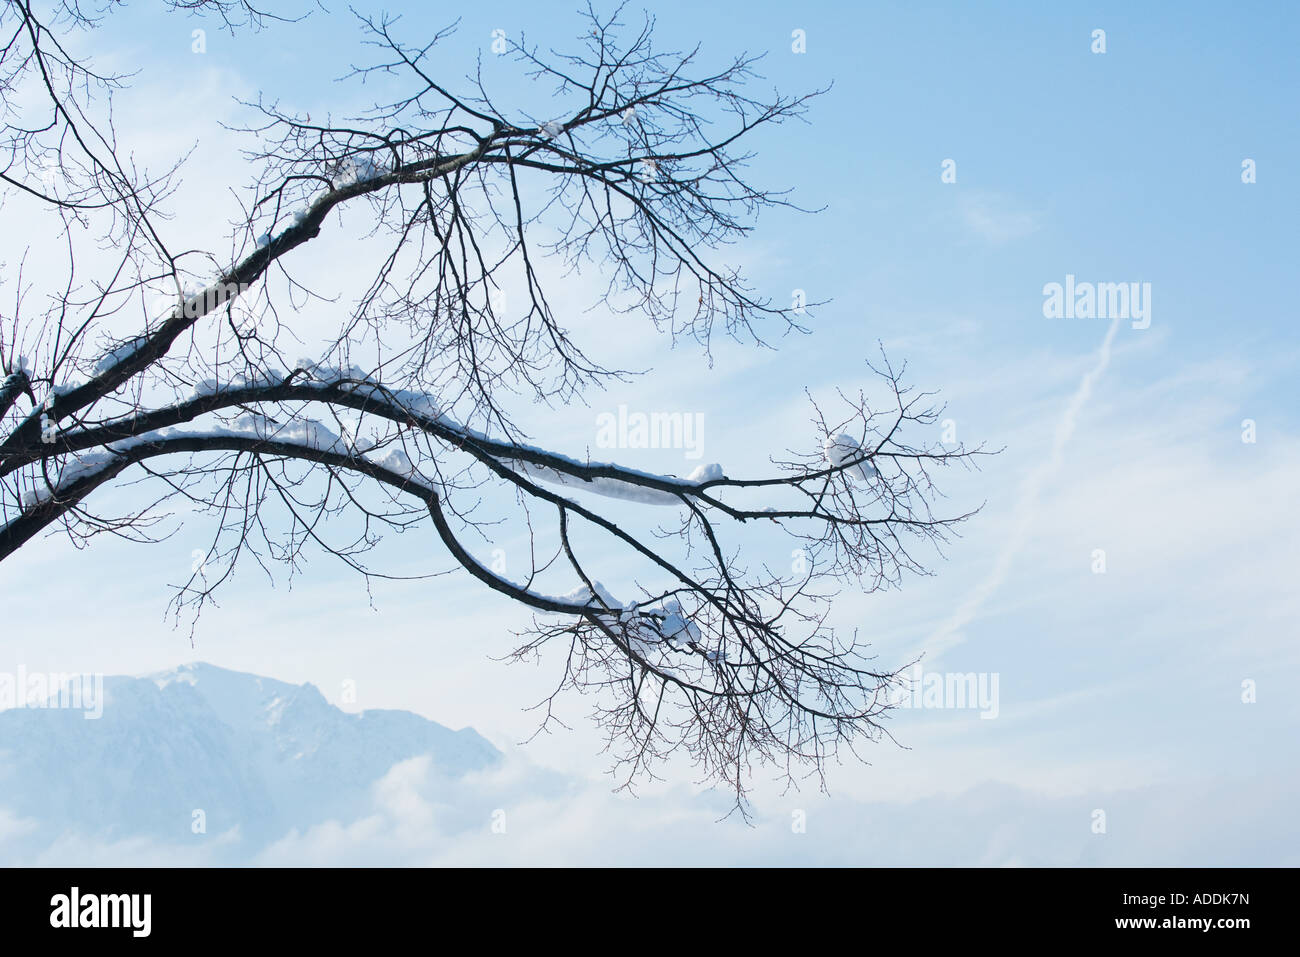 Snow-covered branches, mountains and clouds in background - Stock Image